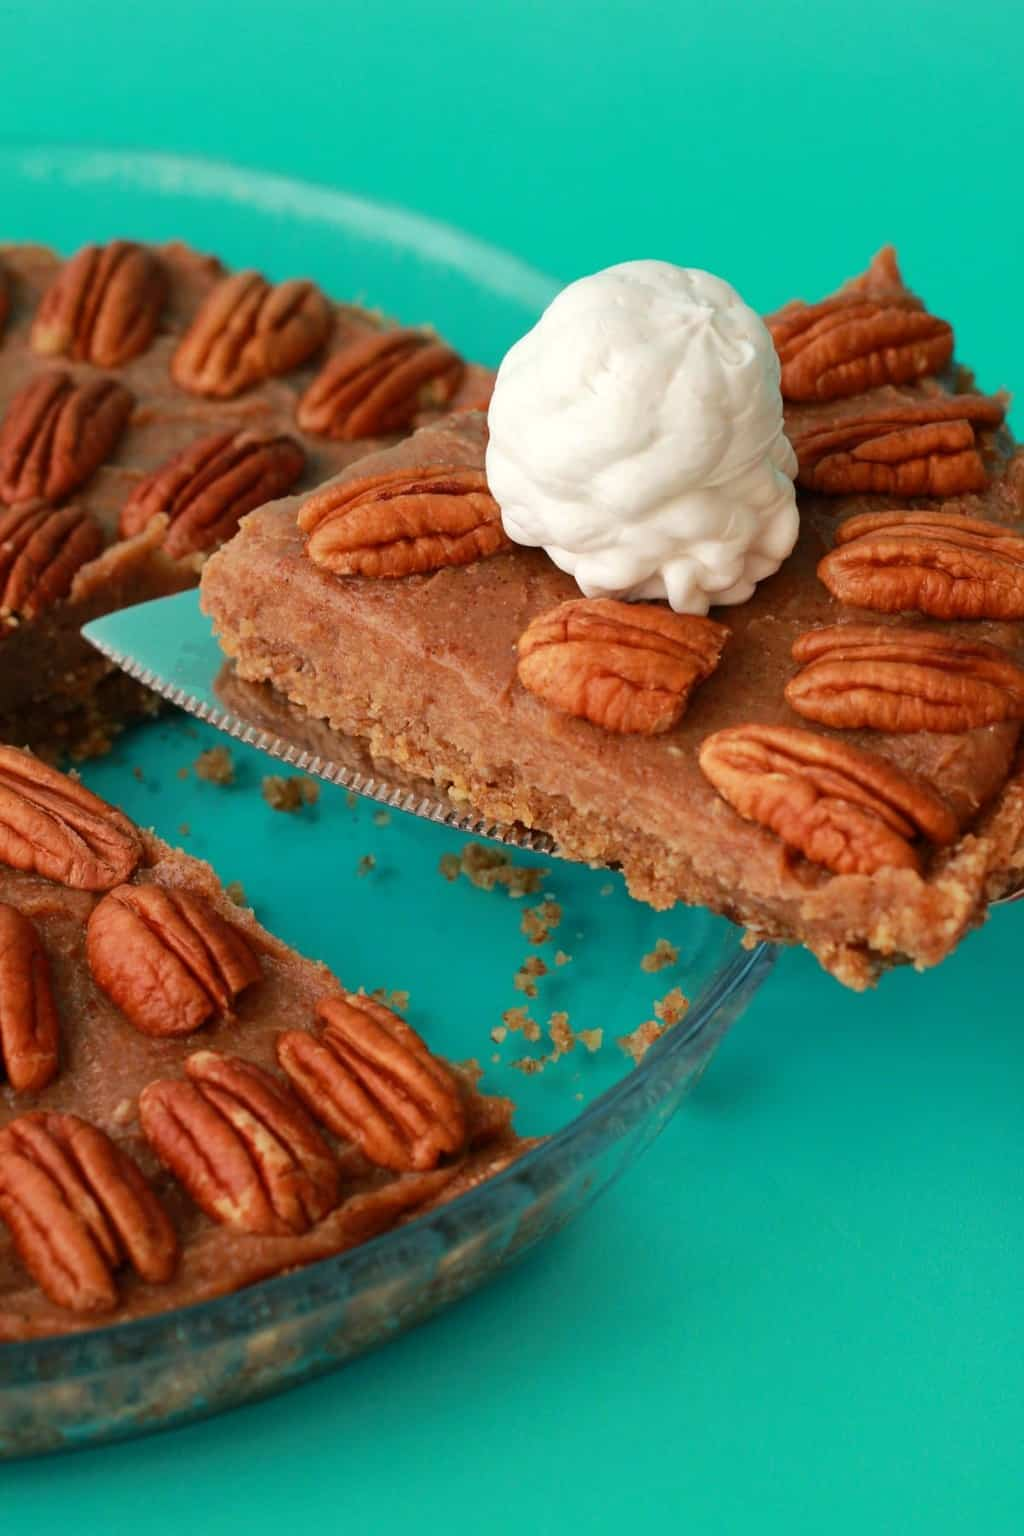 Deliciously raw vegan pecan pie. 3-layers of raw goodness, packed with pecans and pecan flavor, super easy to make, and utterly divine served with vegan whipped cream! #vegan #lovingitvegan #raw #pie #dessert